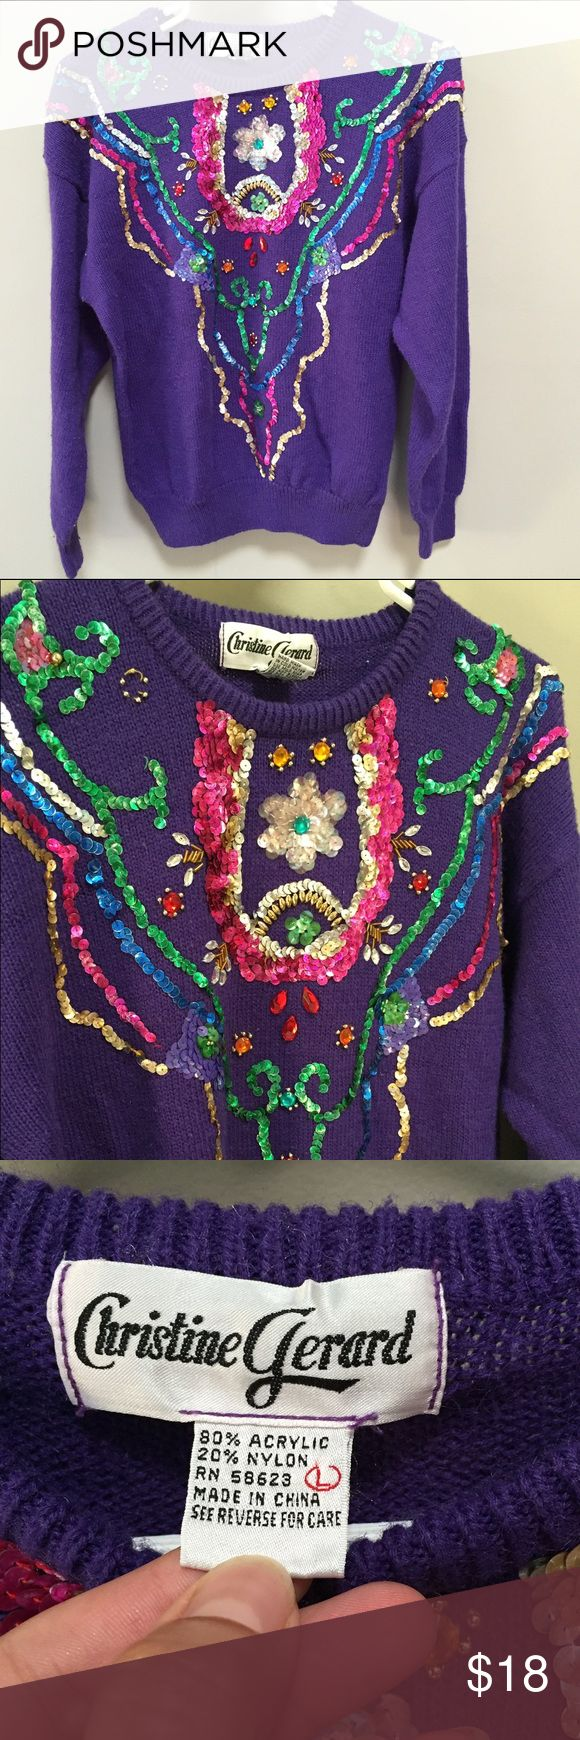 Vintage Sequined Sweater Purple Beaded Sweater, 1980s Vintage Sweater, Beverly Goldberg Sweater, Epic 80s Sweater, Sequined Sweater Christine Gerard Ugly Sweater M L Beautifully epic 80s sweater, in purple. dazzling with sequins and beadwork in many colors. Tag says L. Fits like M. Vintage Sweaters Crew & Scoop Necks